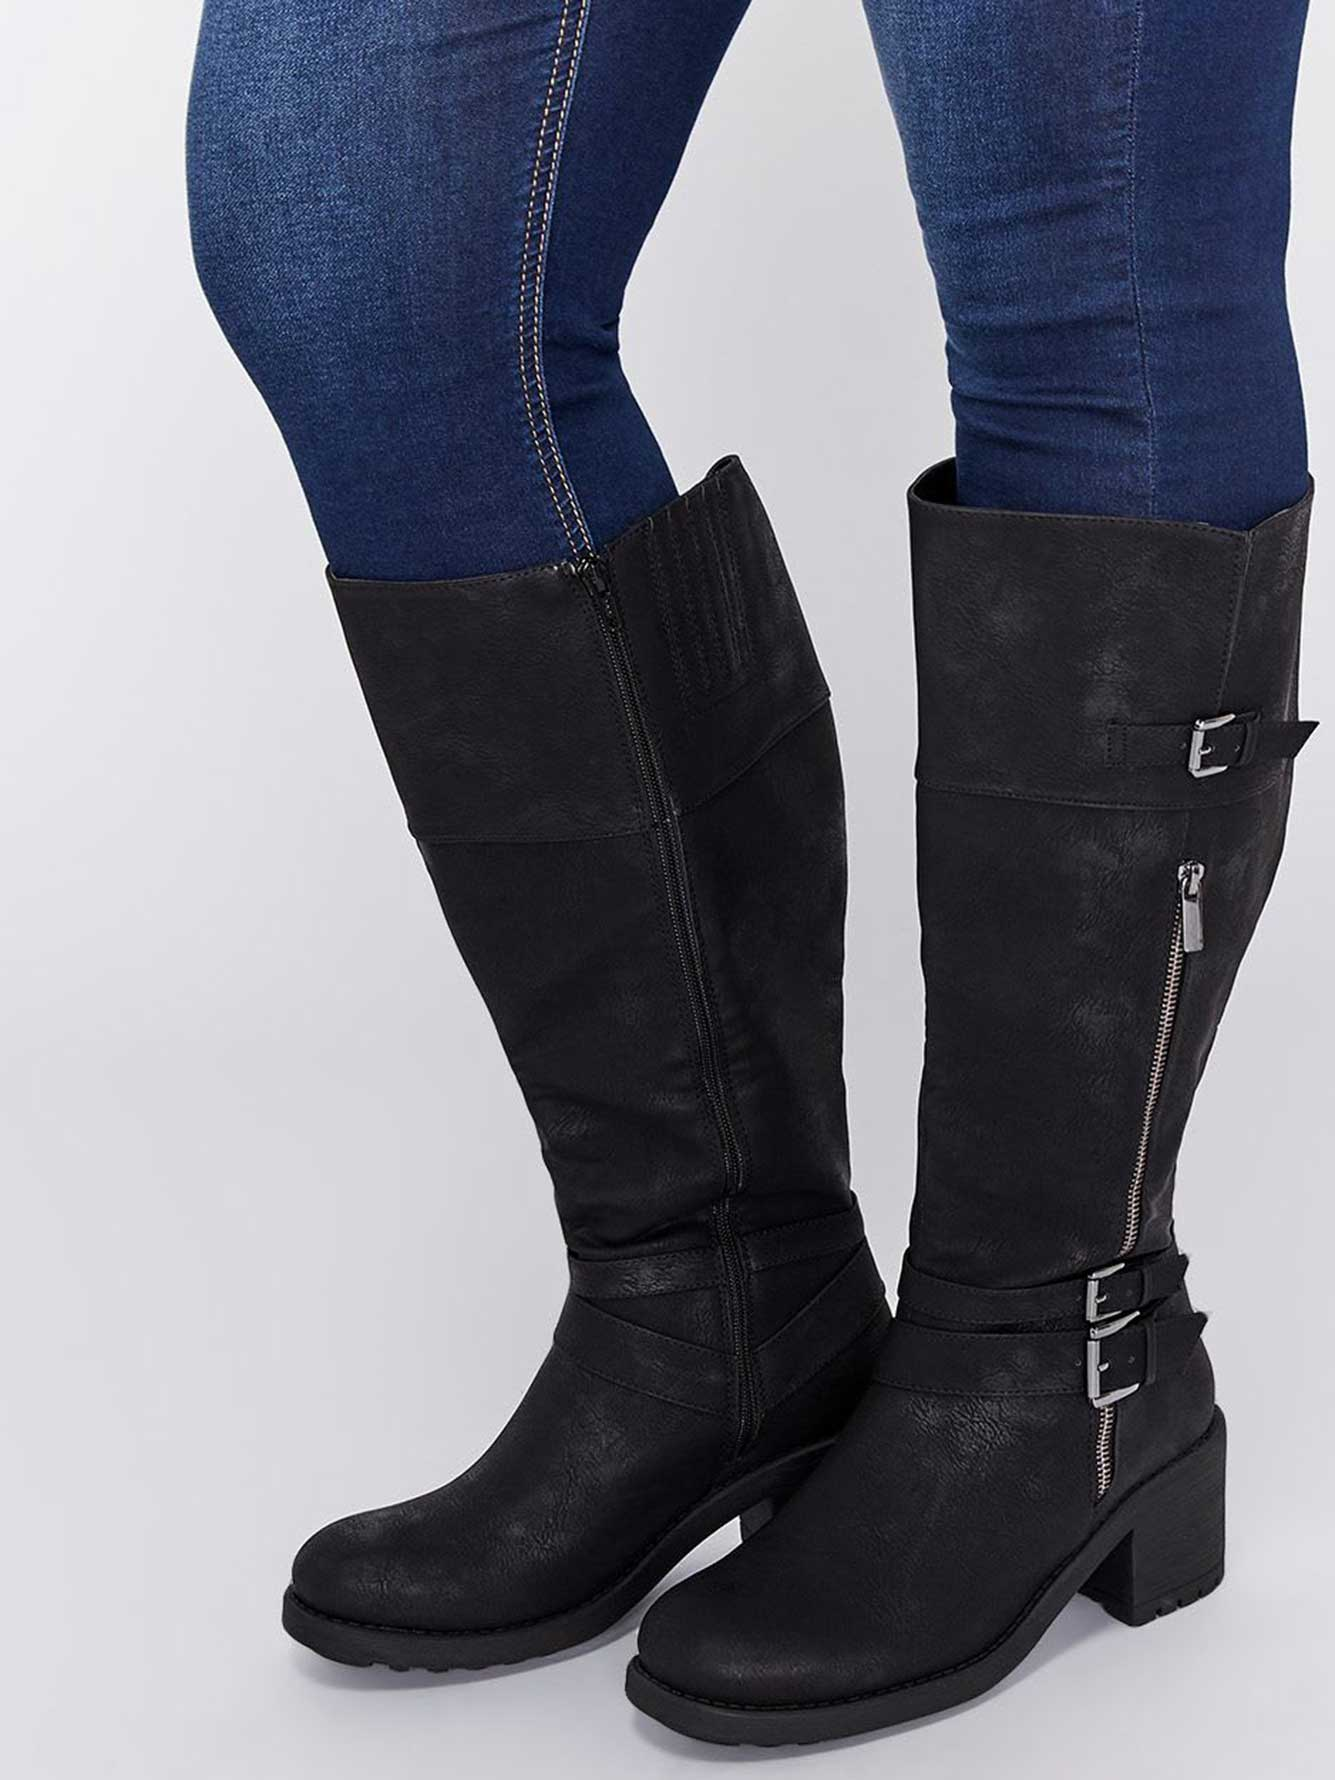 Boots with Strap Details - Sandra